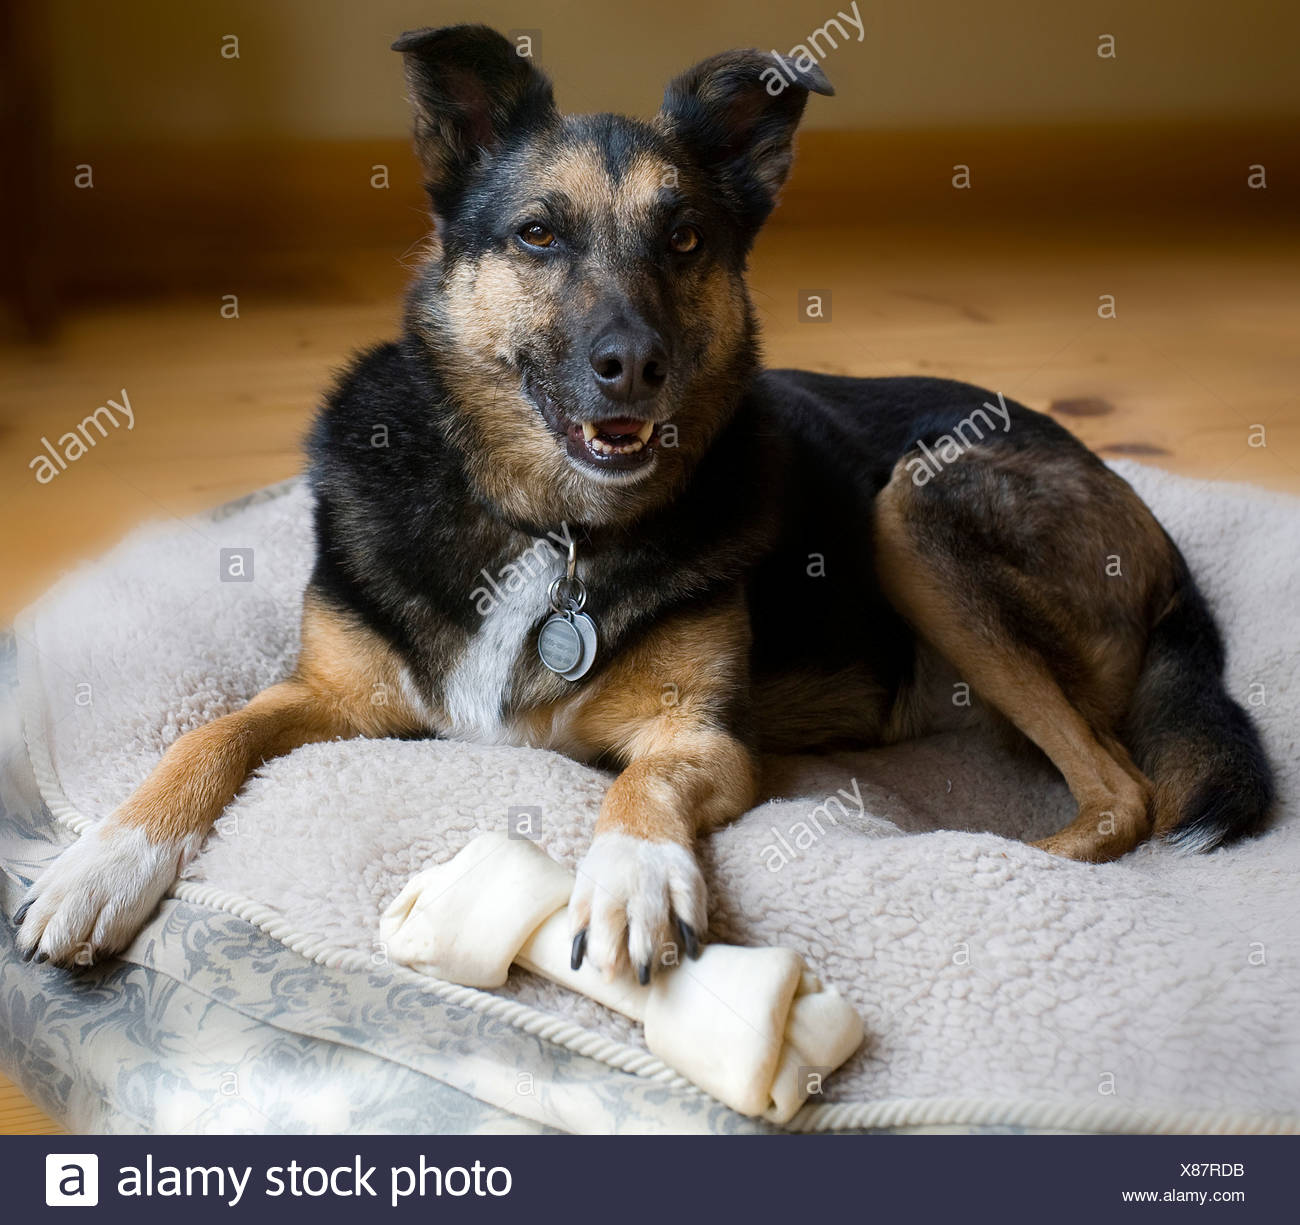 Dog sitting on a pet bed with a chew bone - Stock Image